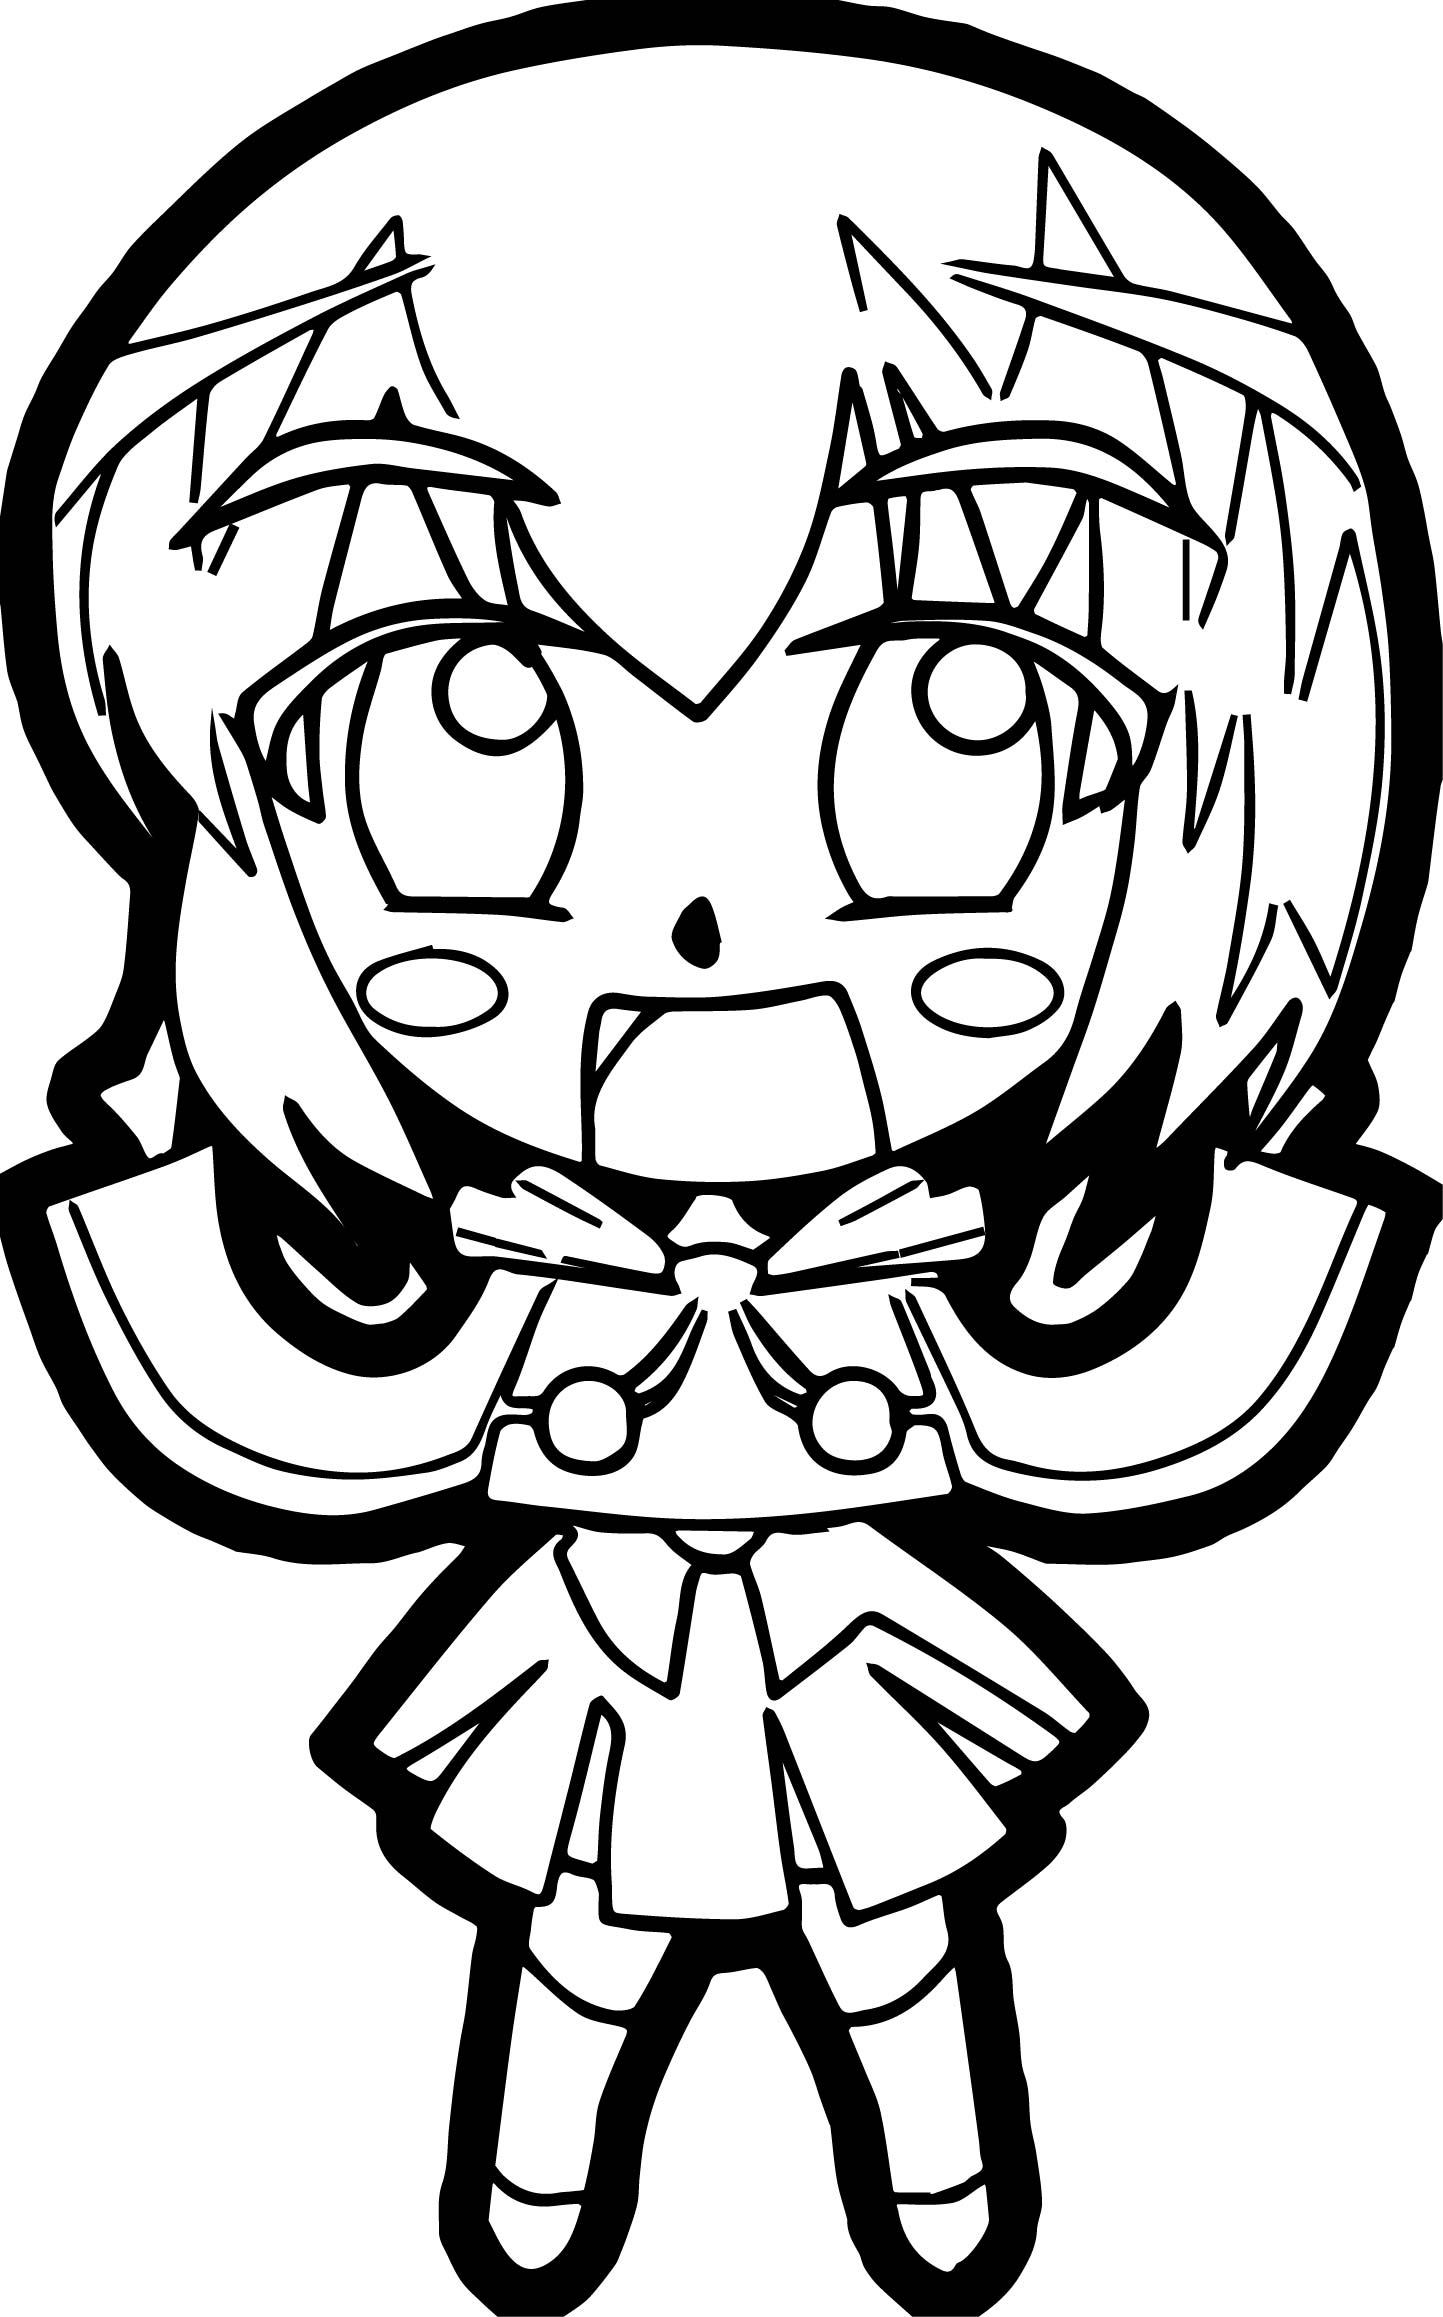 Anime Toy Girl Coloring Page